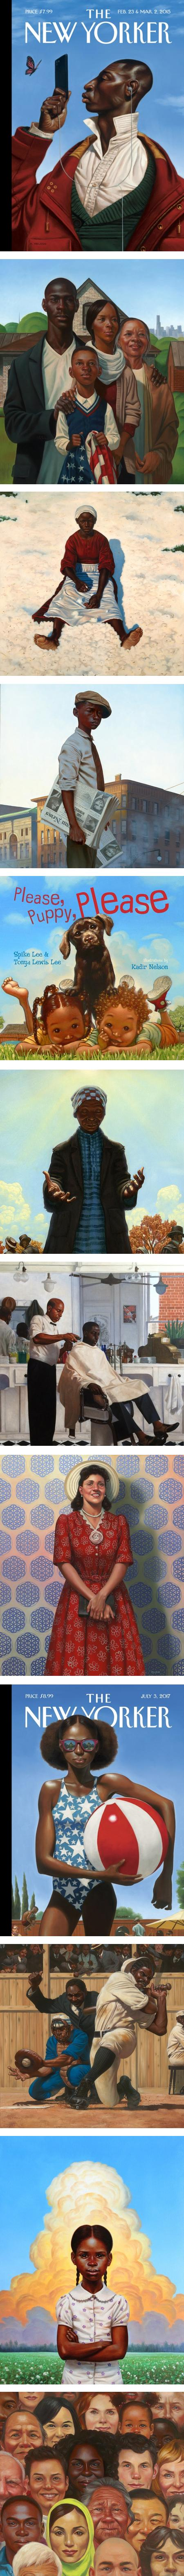 Kadir Nelson, illustration and gallery painting